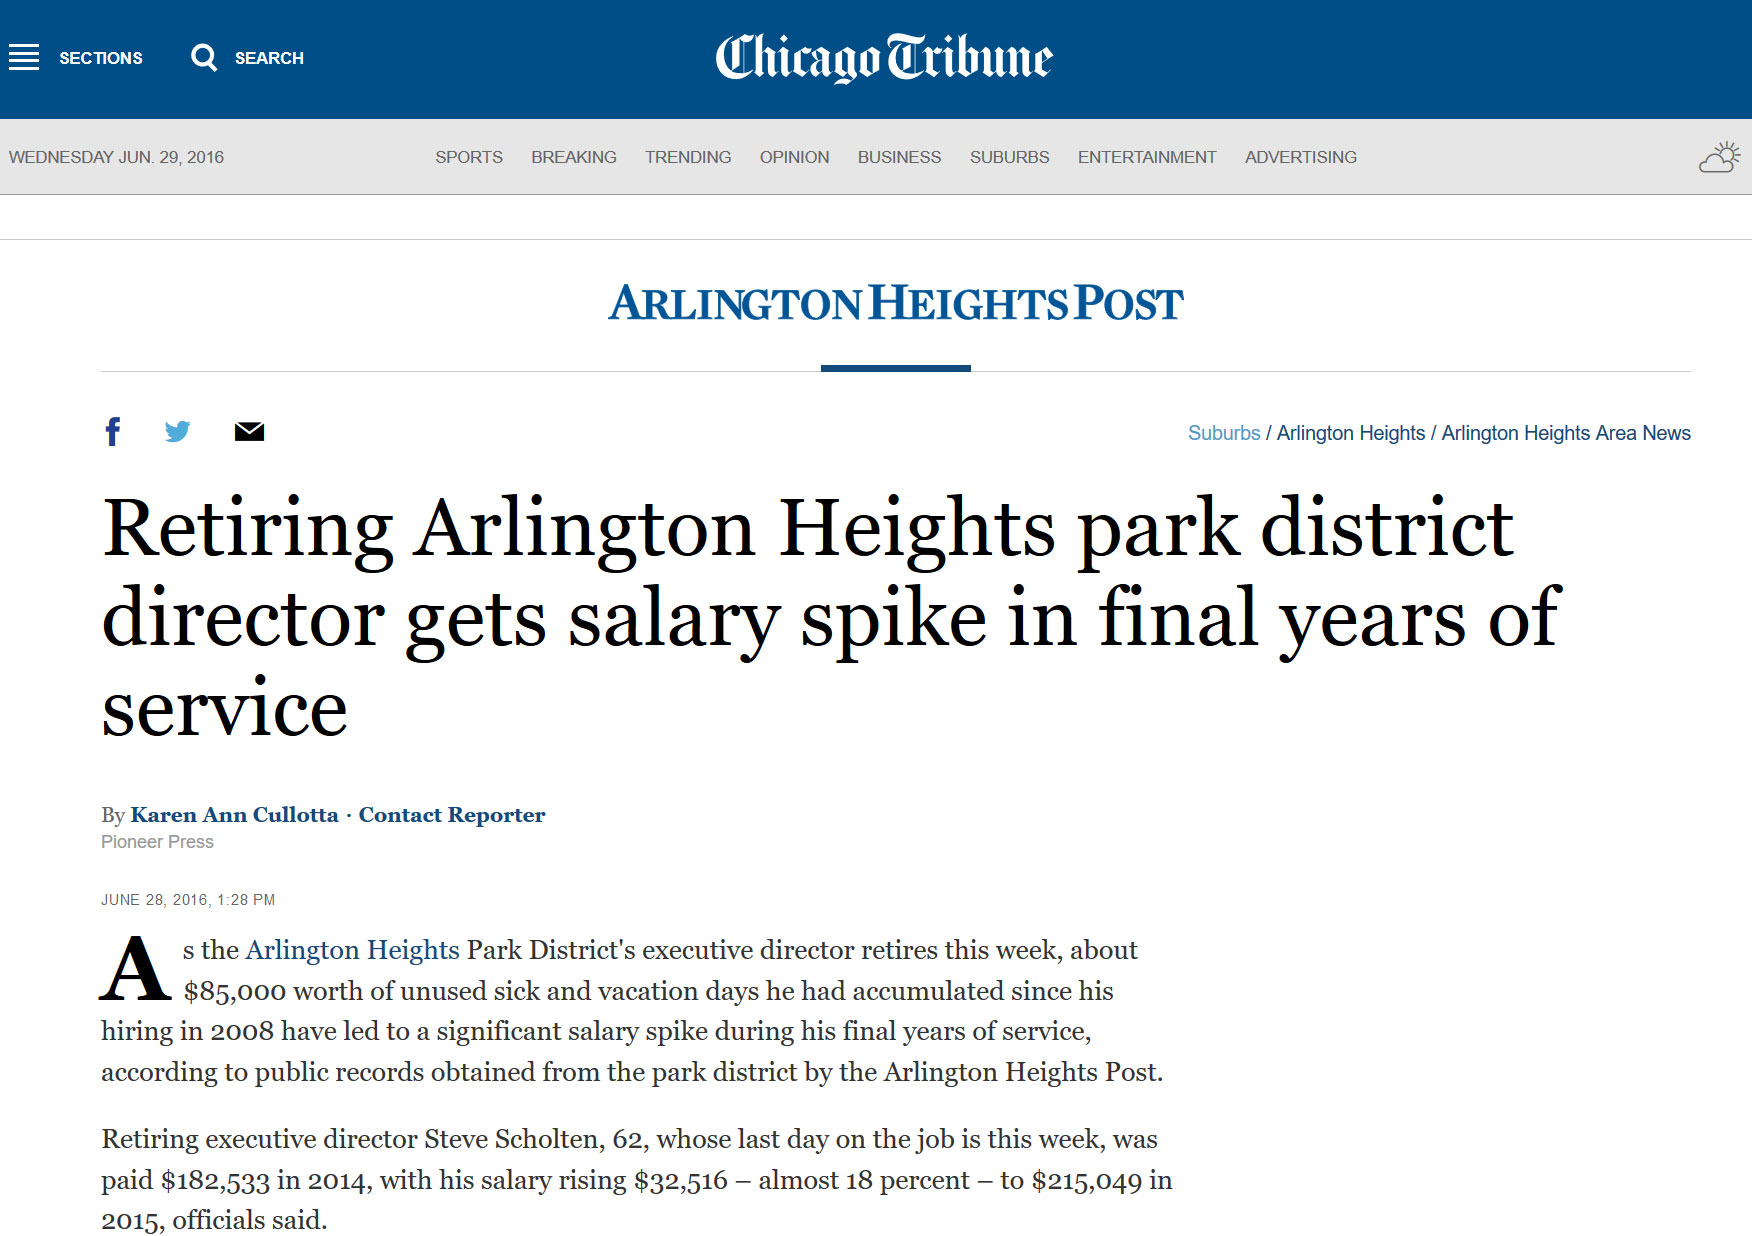 Chicago Tribune|Retiring Arlington Heights park district director gets salary spike in final years of service